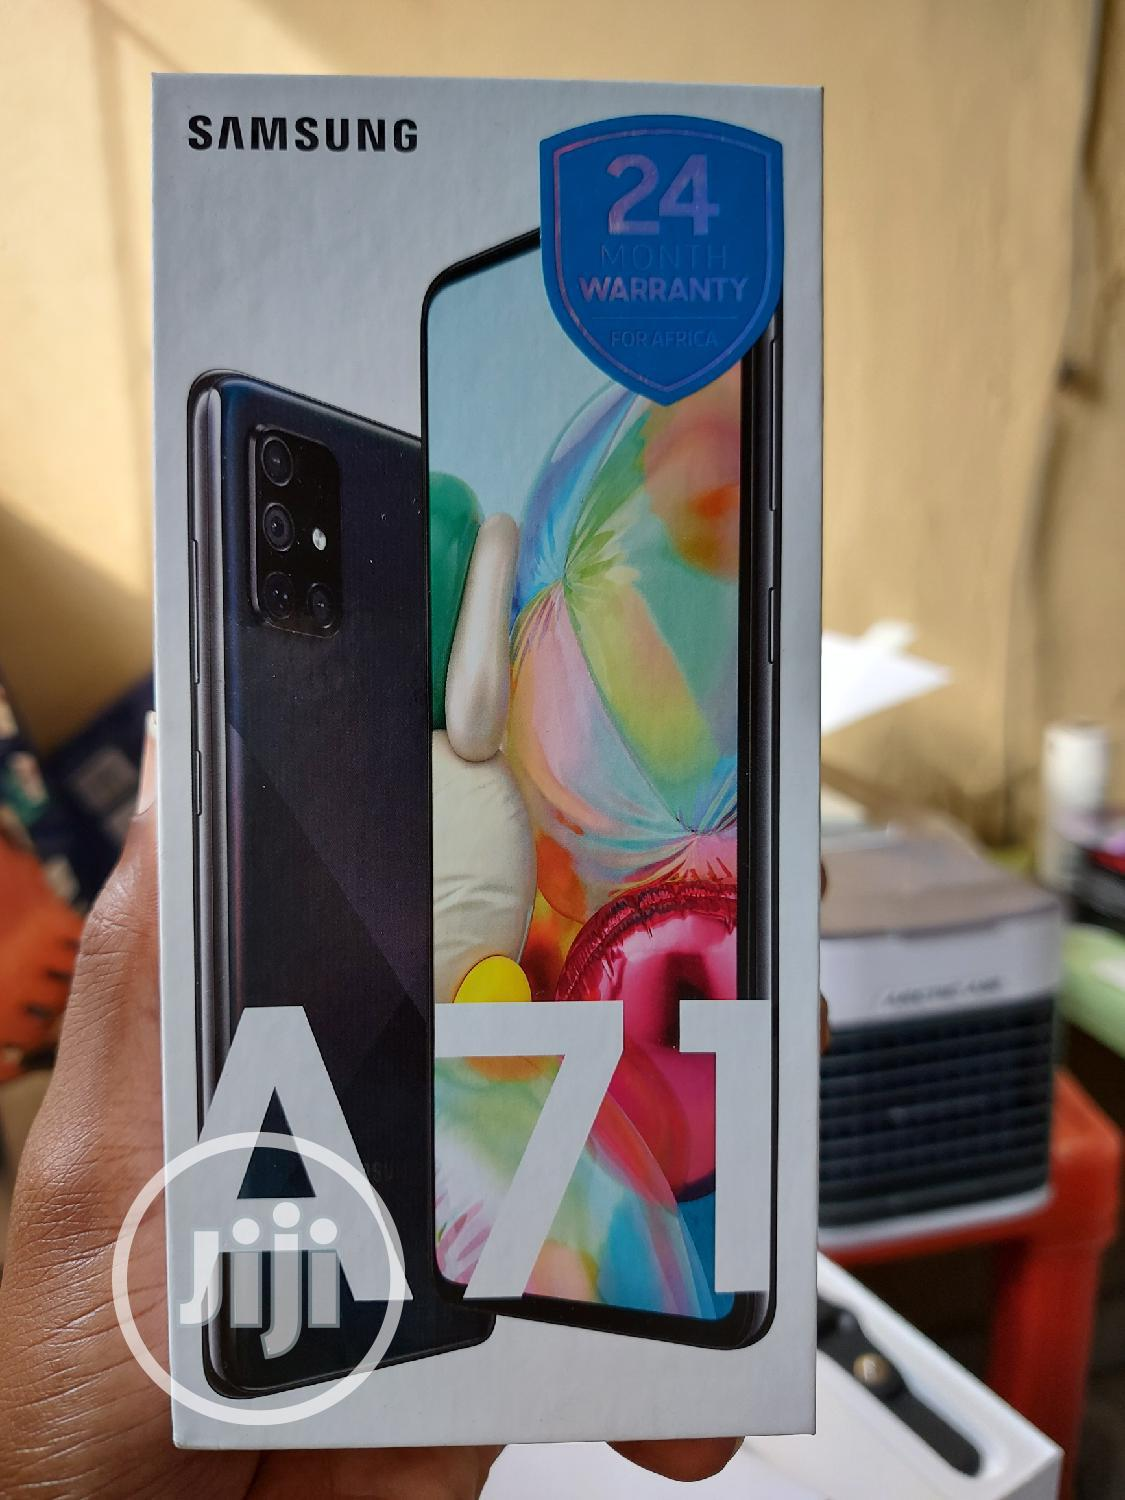 New Samsung Galaxy A71 128 GB Black | Mobile Phones for sale in Oshodi, Lagos State, Nigeria